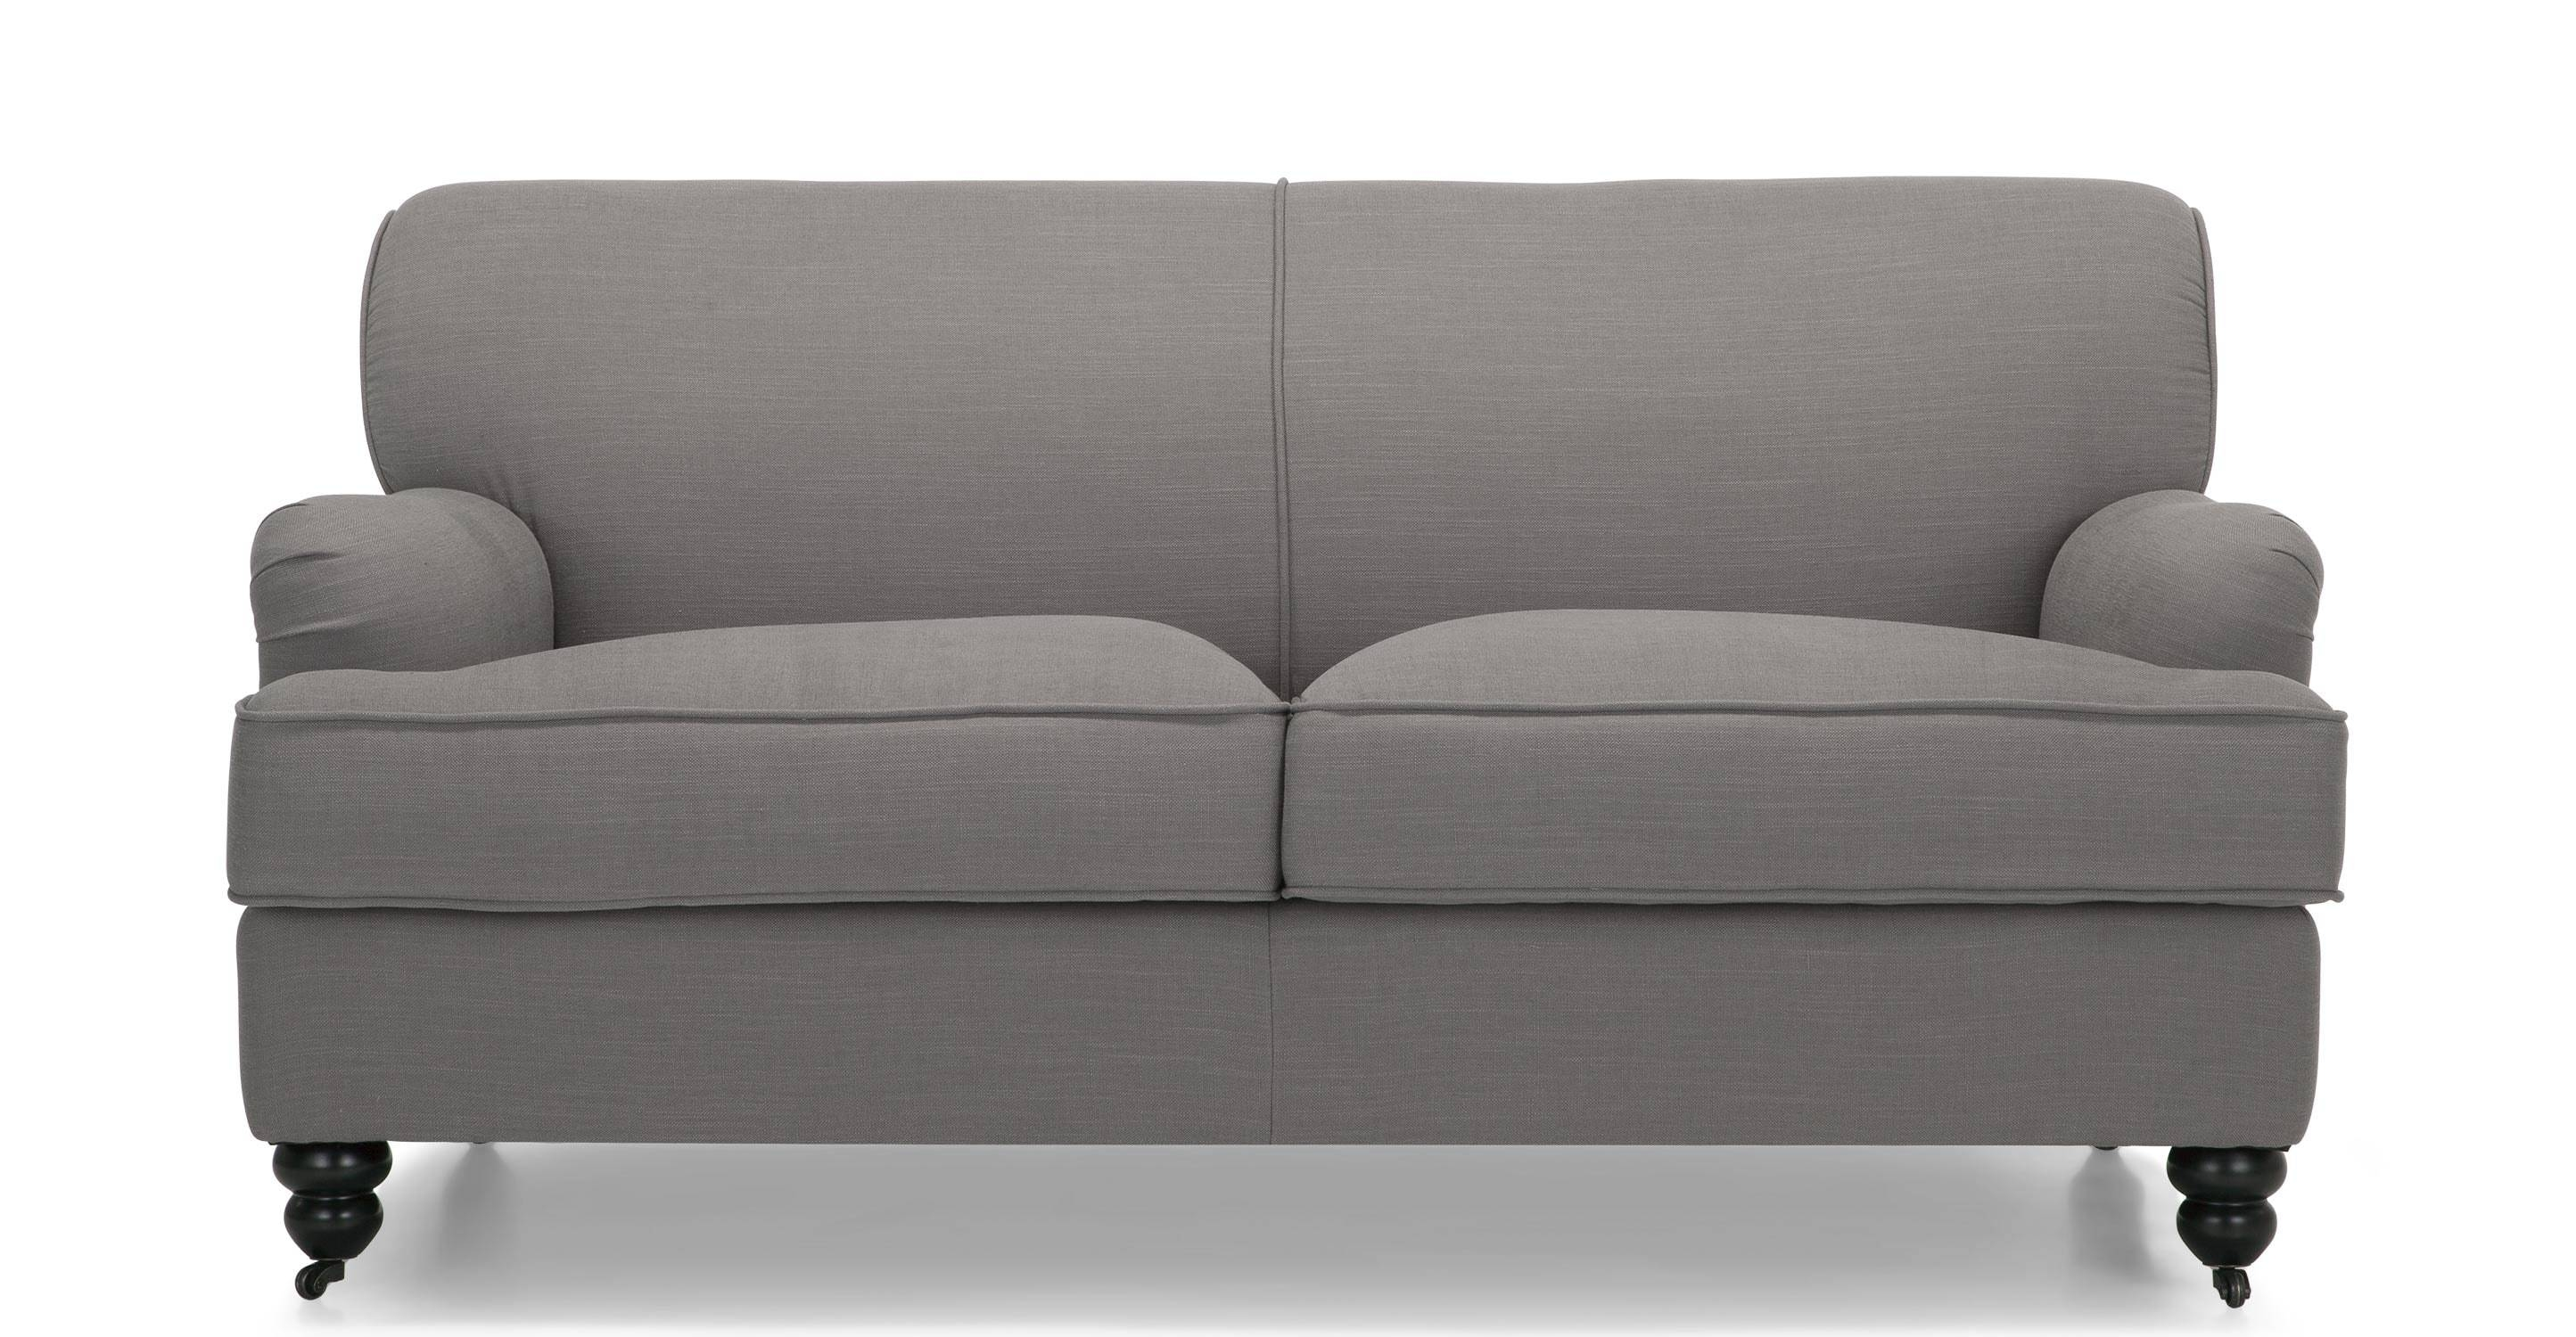 Sofas Center : Seater Sofas For Small Spacessmallsmall Heals2 Within Small 2 Seater Sofas (View 23 of 30)